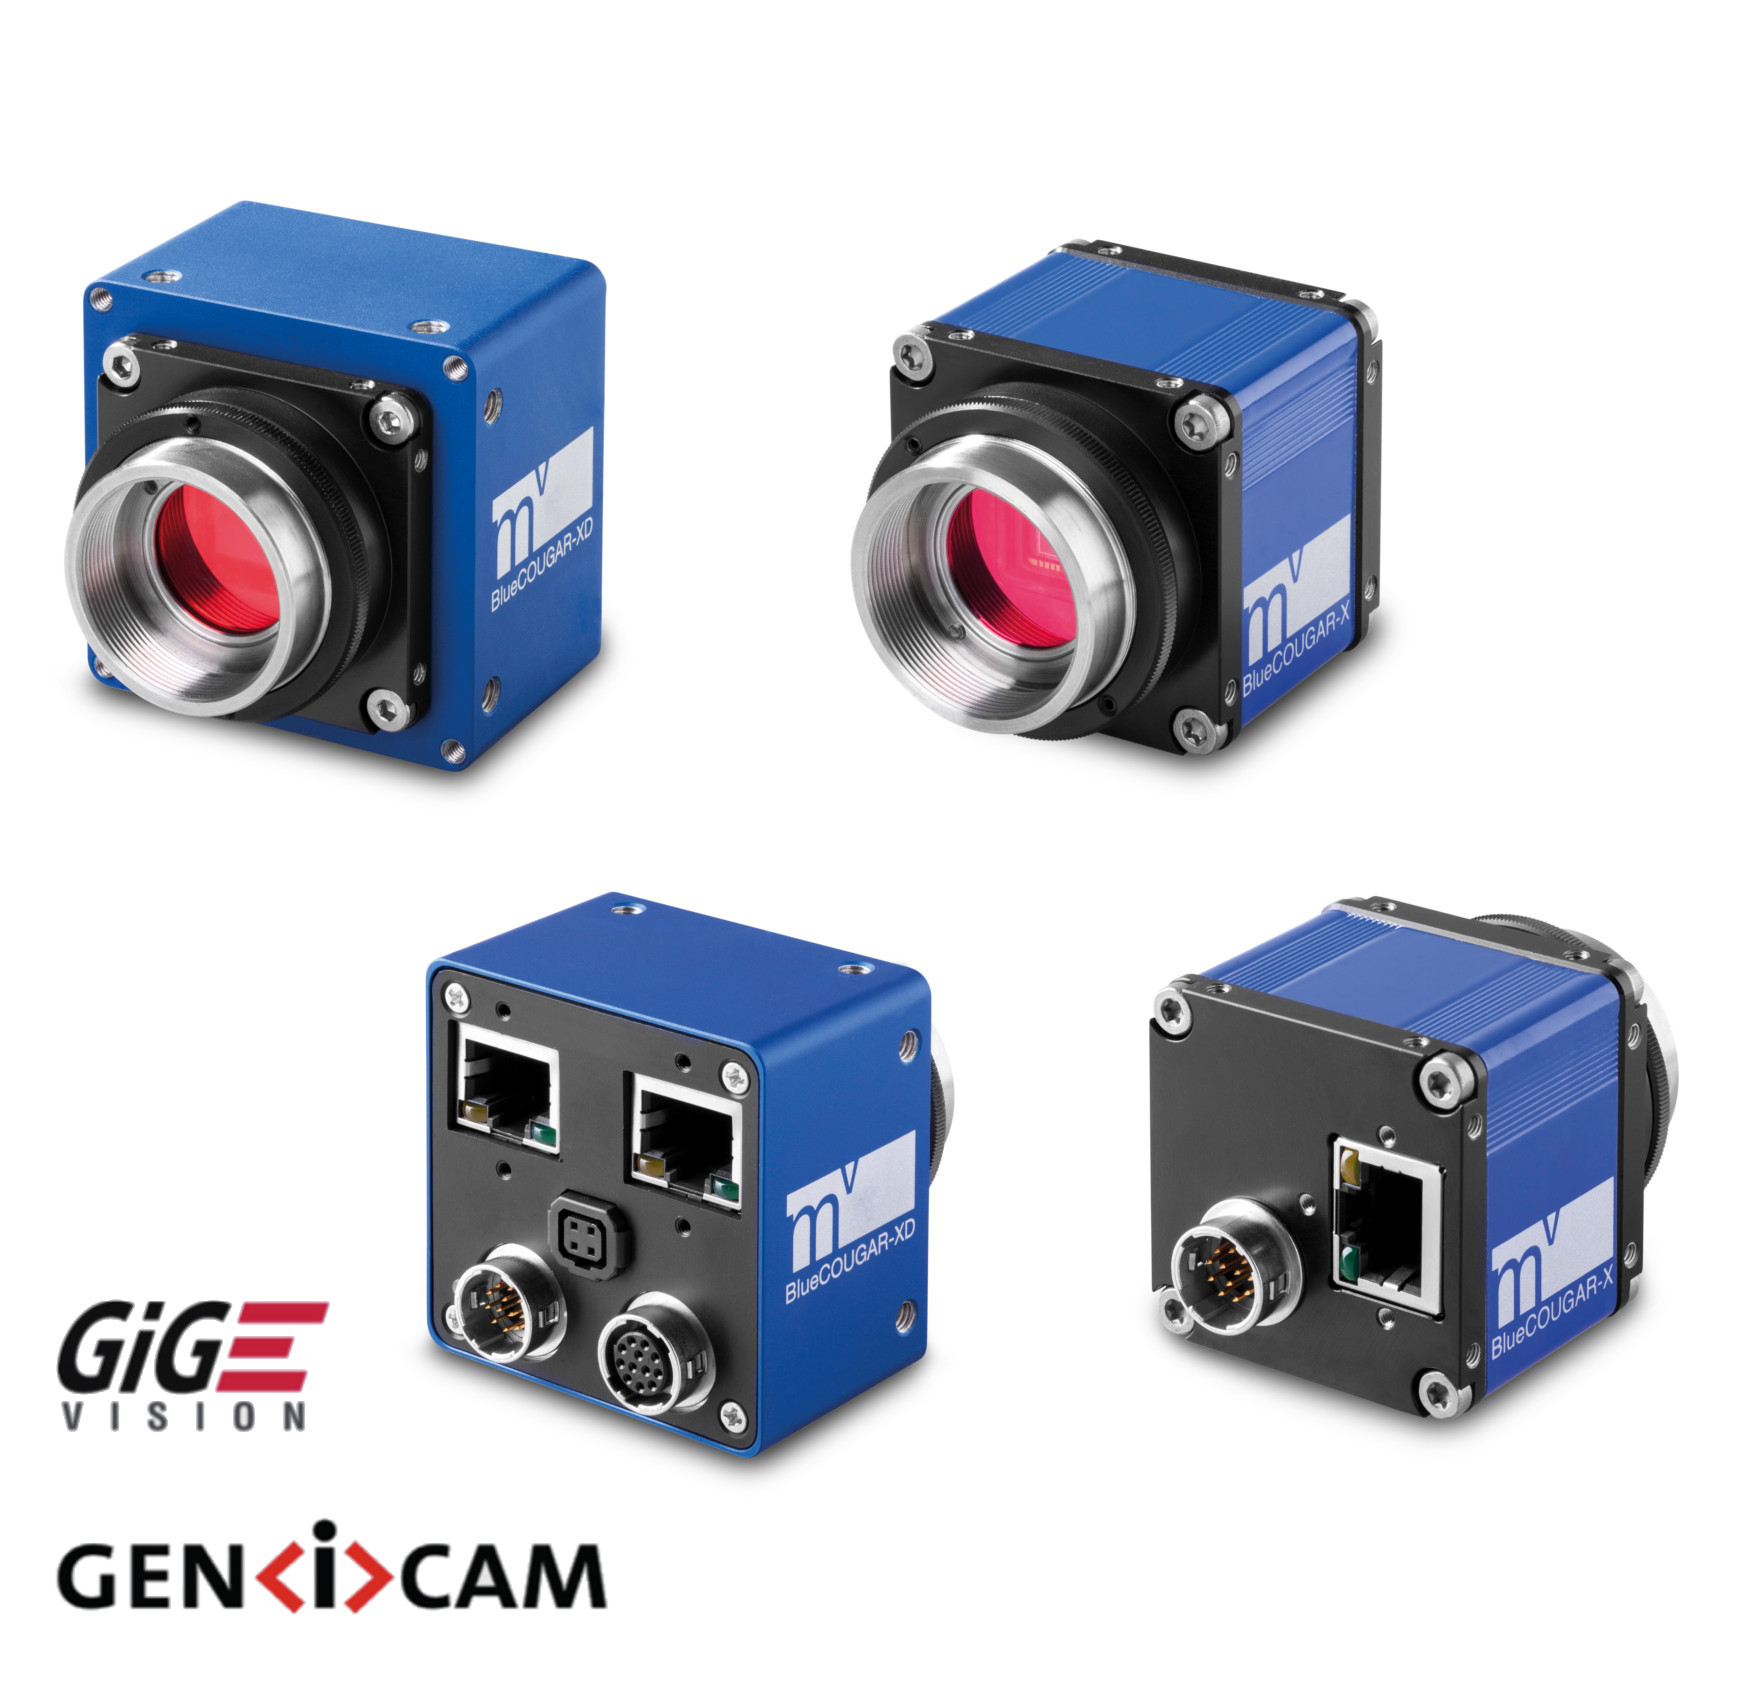 GigE / Dual GigE cameras with Smart Features